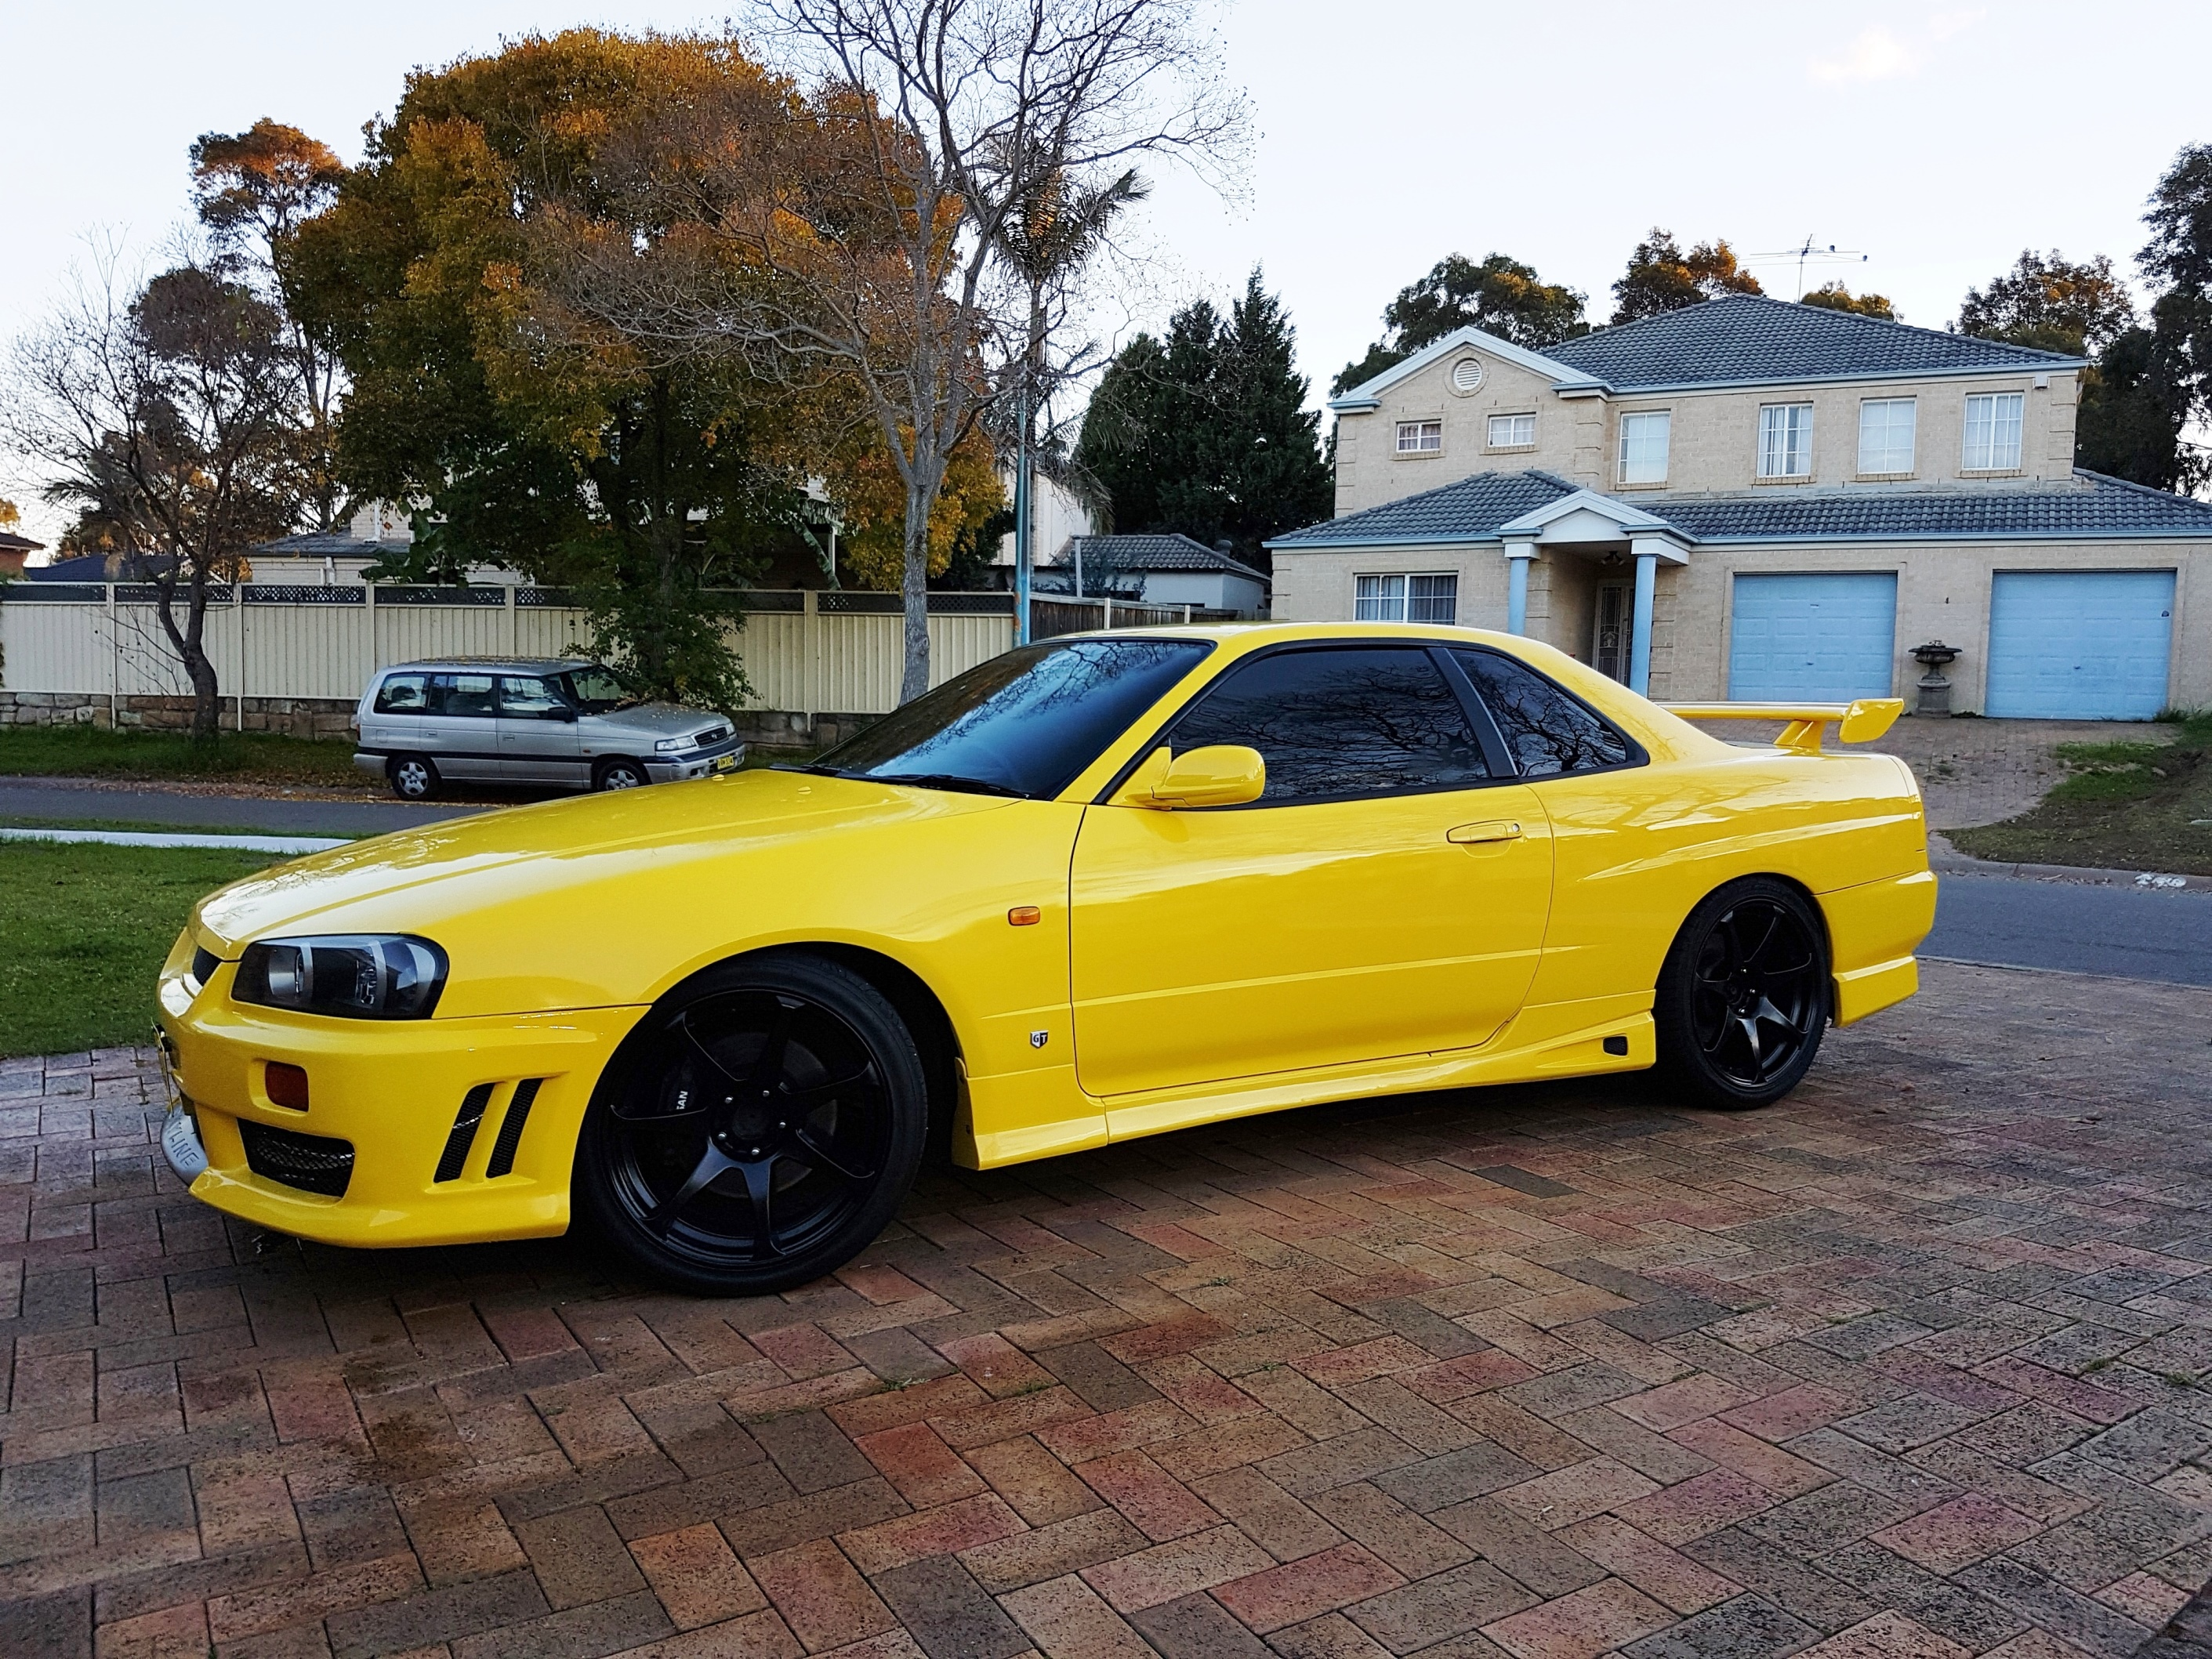 nissan skyline r34 gt t for sale private whole cars only sau community. Black Bedroom Furniture Sets. Home Design Ideas